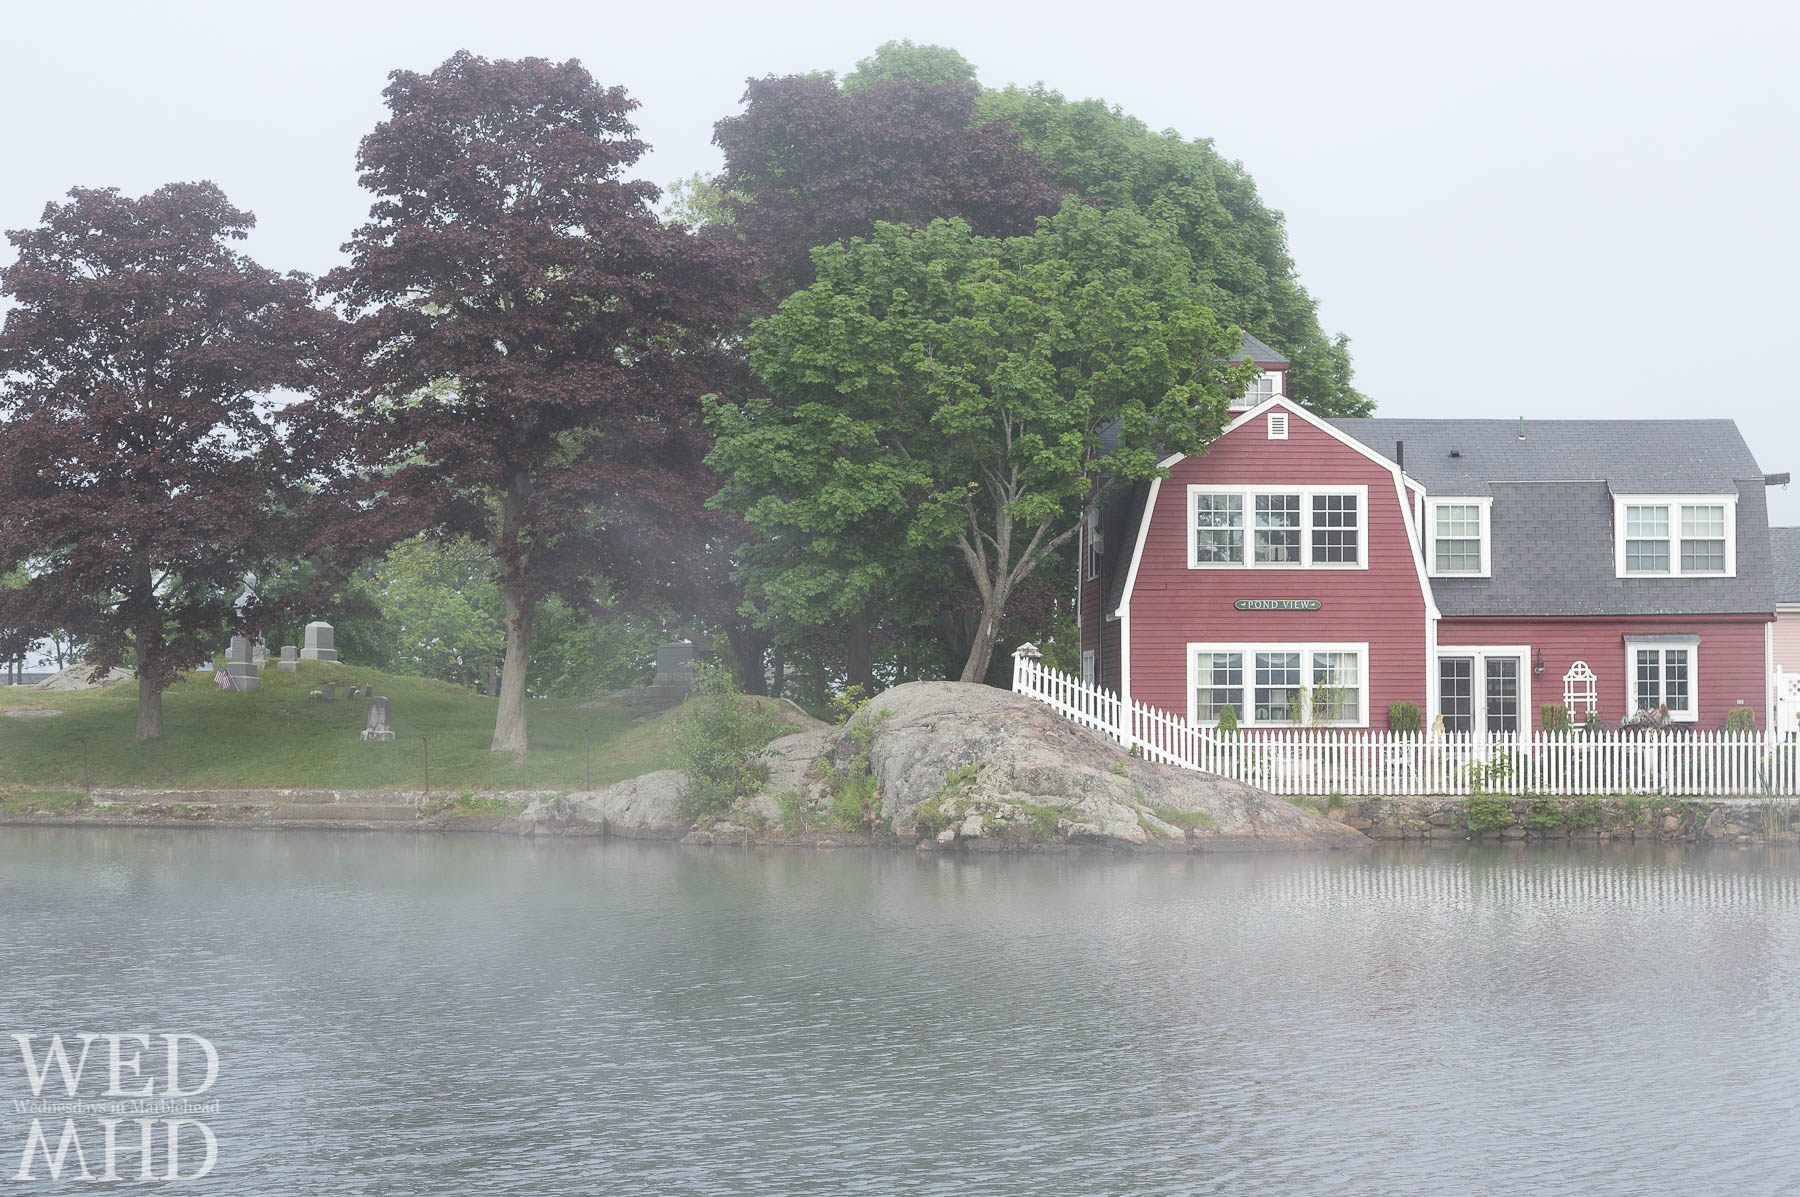 Fog builds at Redds Pond with the house named Pond View and its white picket fence reflecting in the water